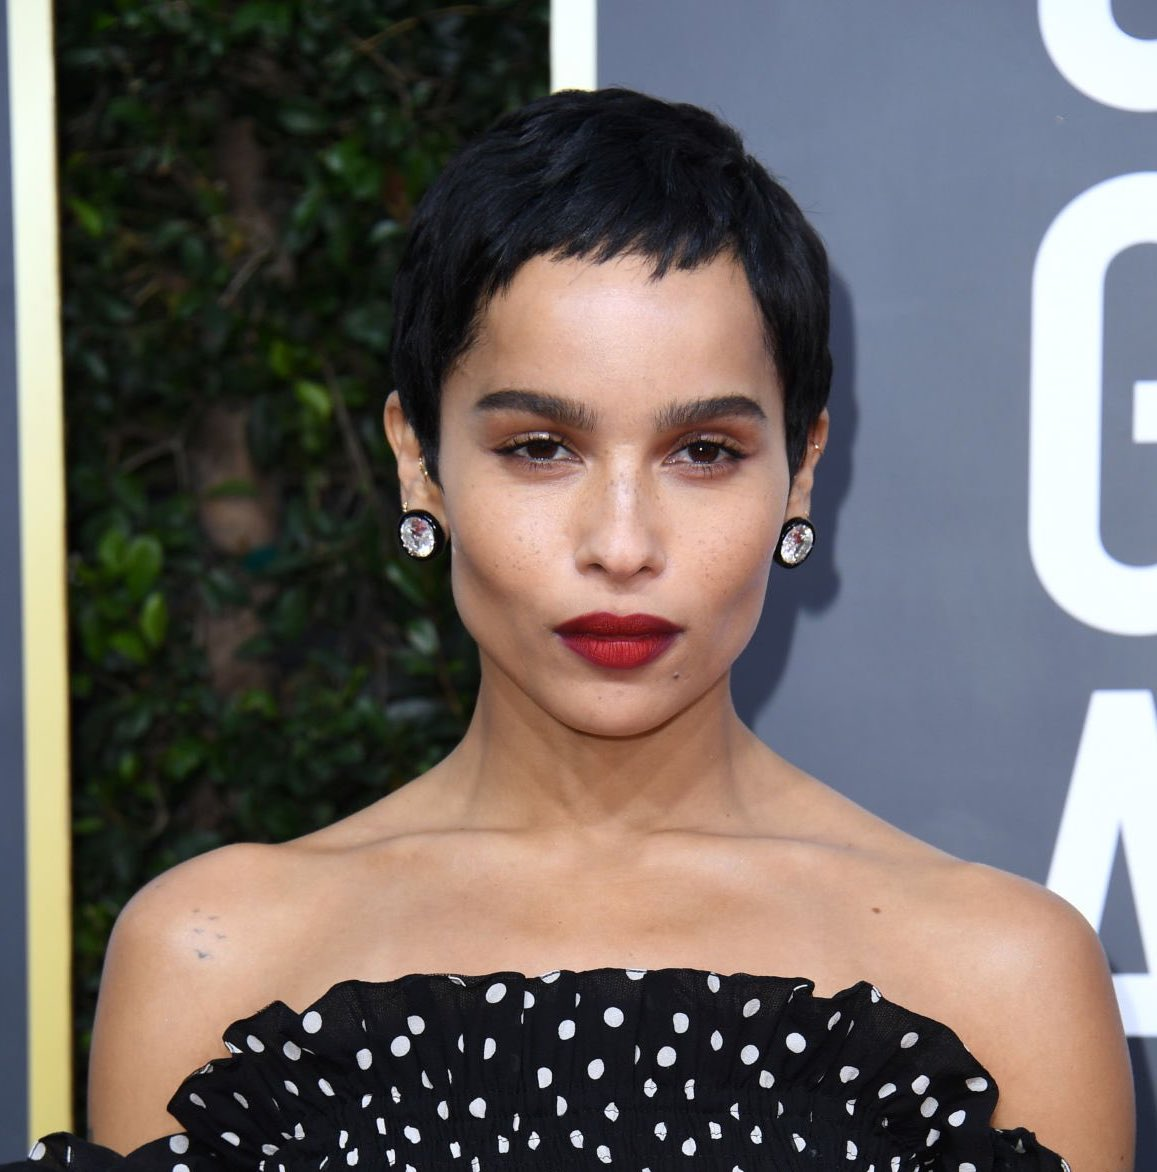 Zoe Kravitz rocks polka dot chic on the GoldenGlobes red carpet